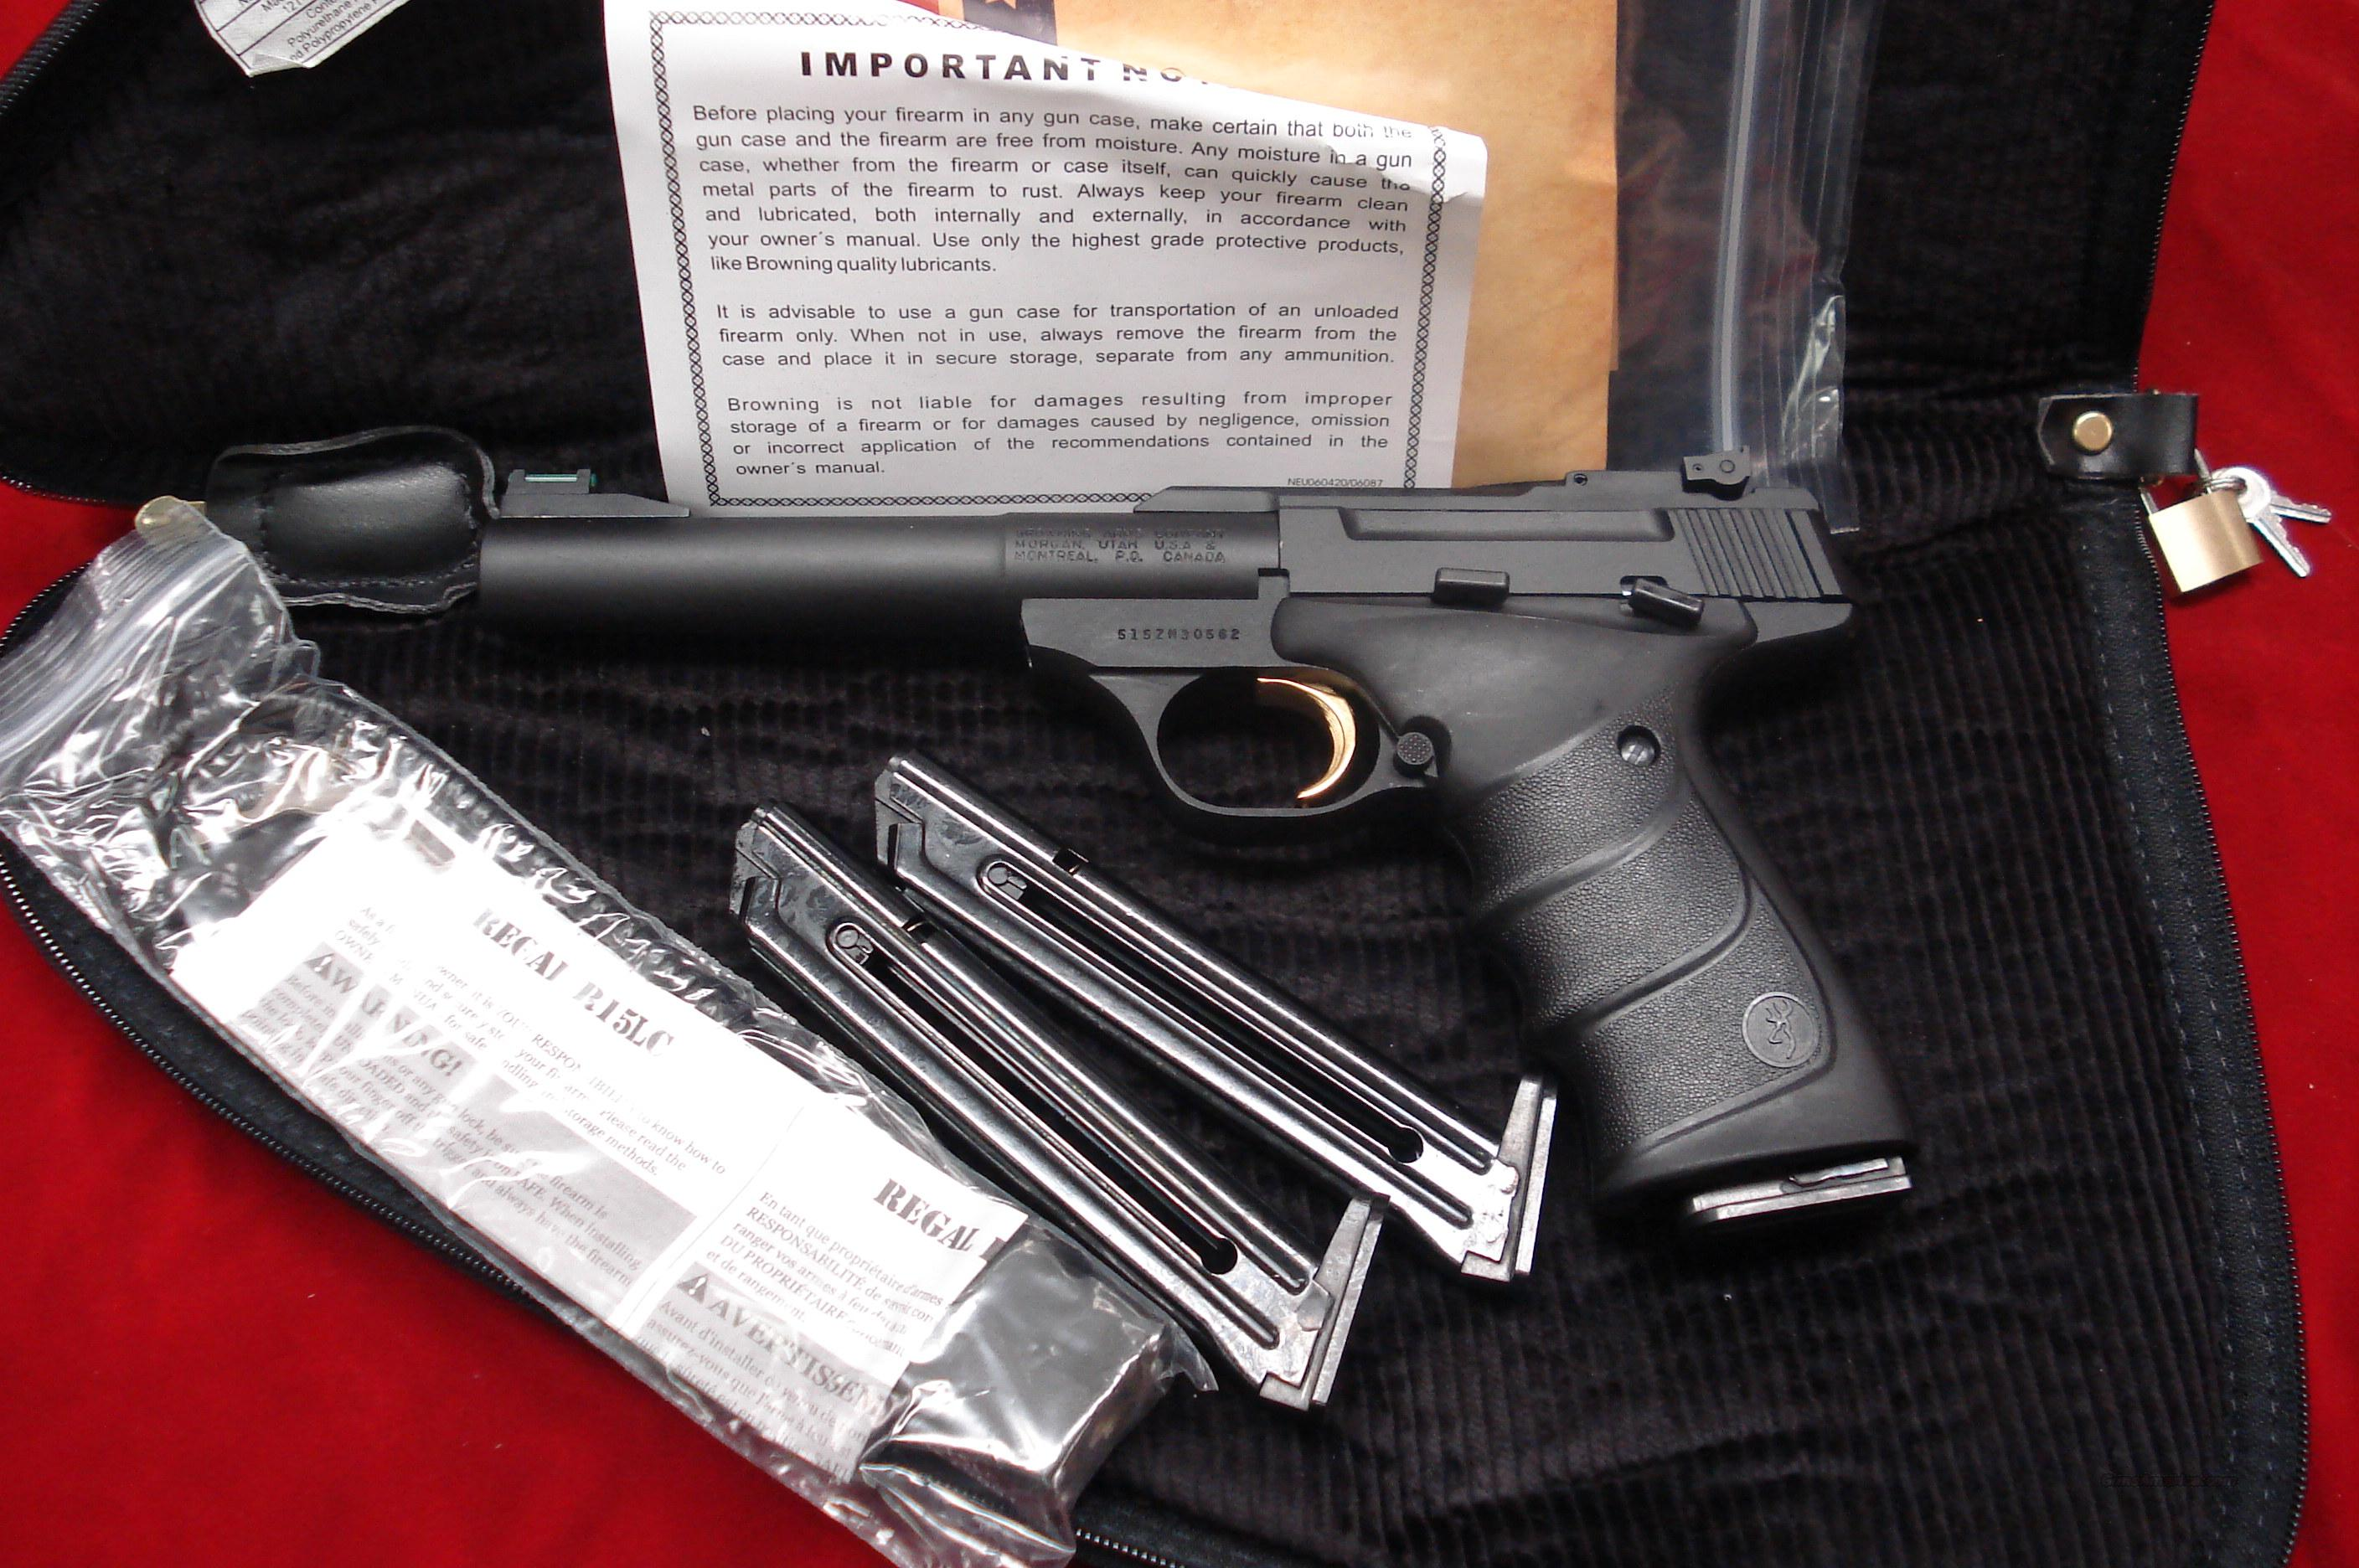 BROWNING BUCKMARK CAMPER BLUE PRO TARGET URX 22CAL. W/3 MAGAZINES AND PISTOL RUG NEW  Guns > Pistols > Browning Pistols > Buckmark